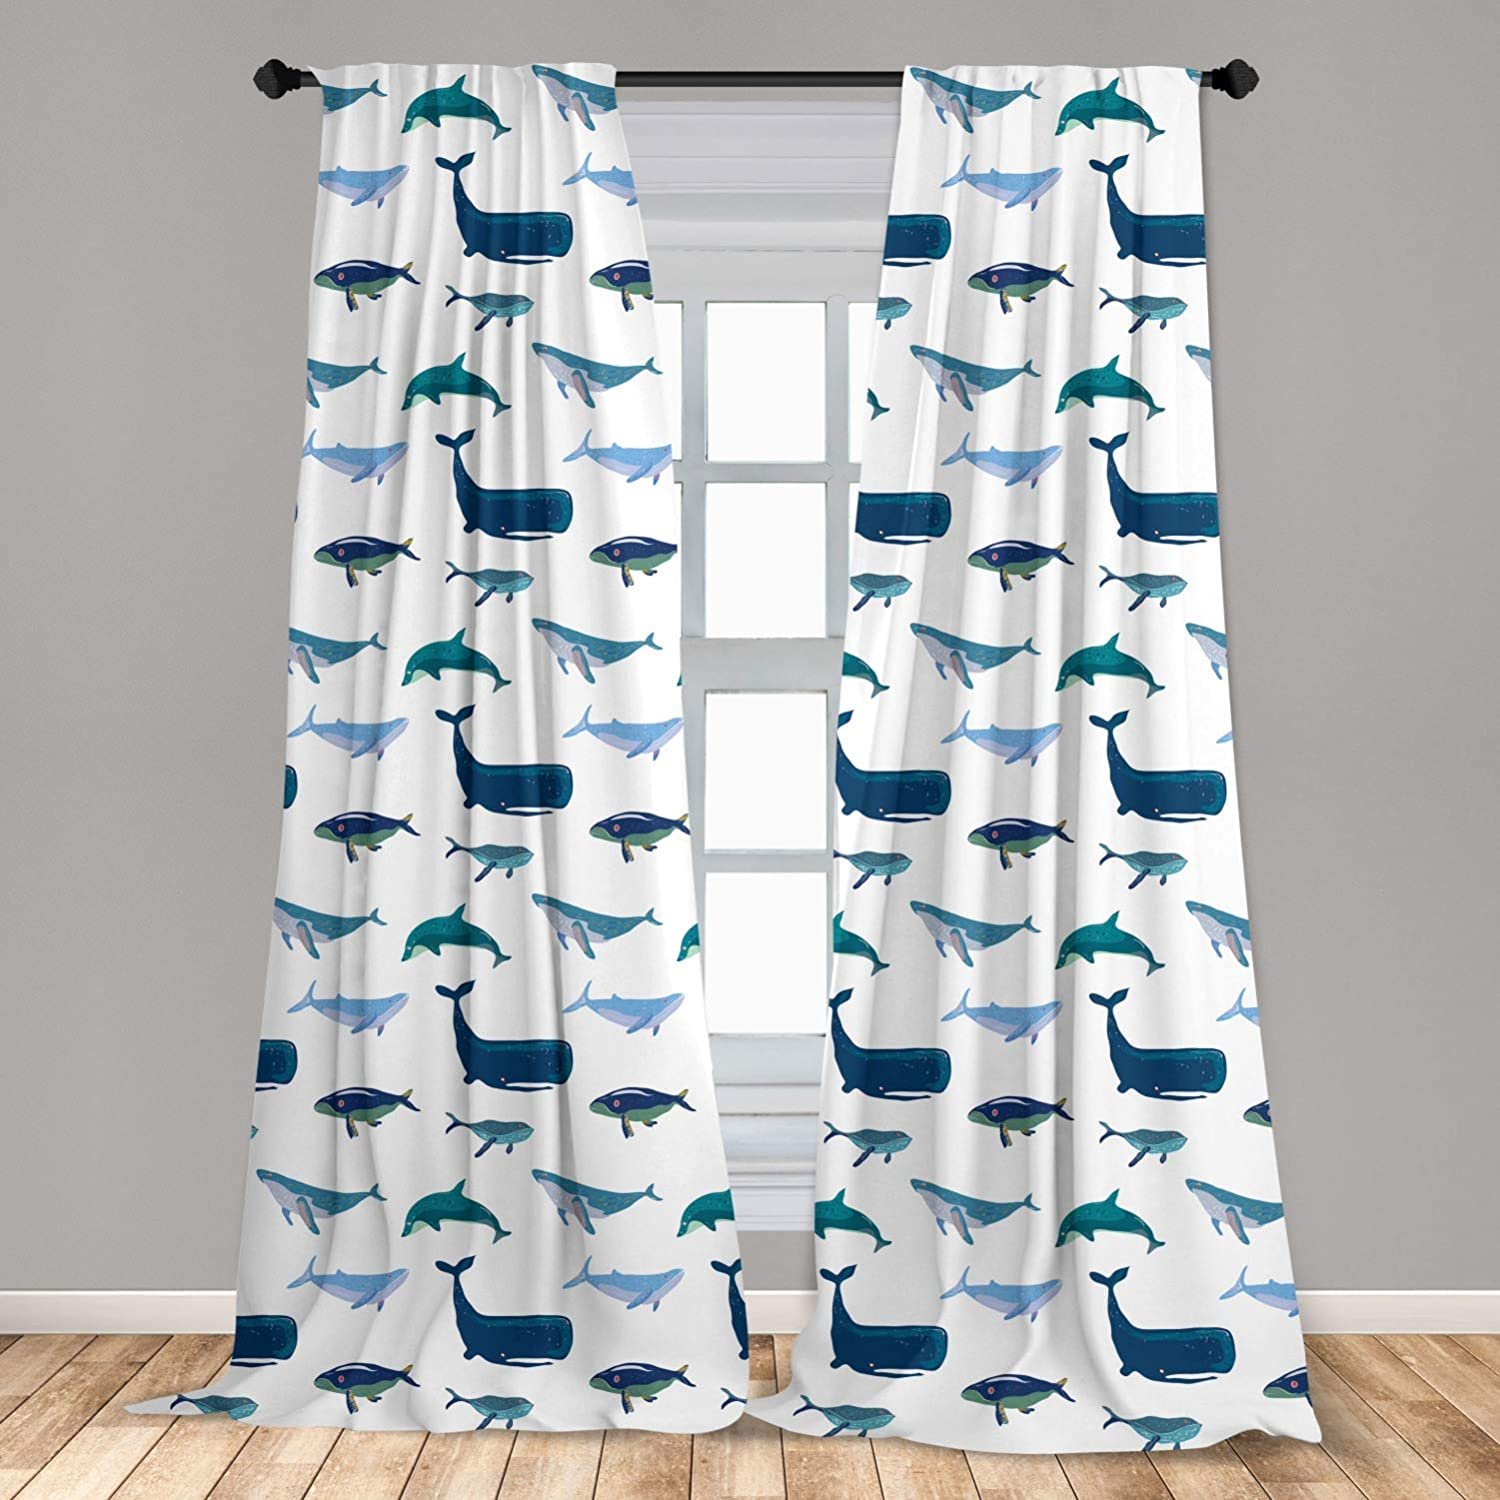 Ambesonne Whale 2 Panel Curtain Set Different Types Of Swimming Marine Characters In Hand Drawn Style Nautical Lightweight Window Treatment Living Room Bedroom Decor 56 X 63 Teal Dark Blue White